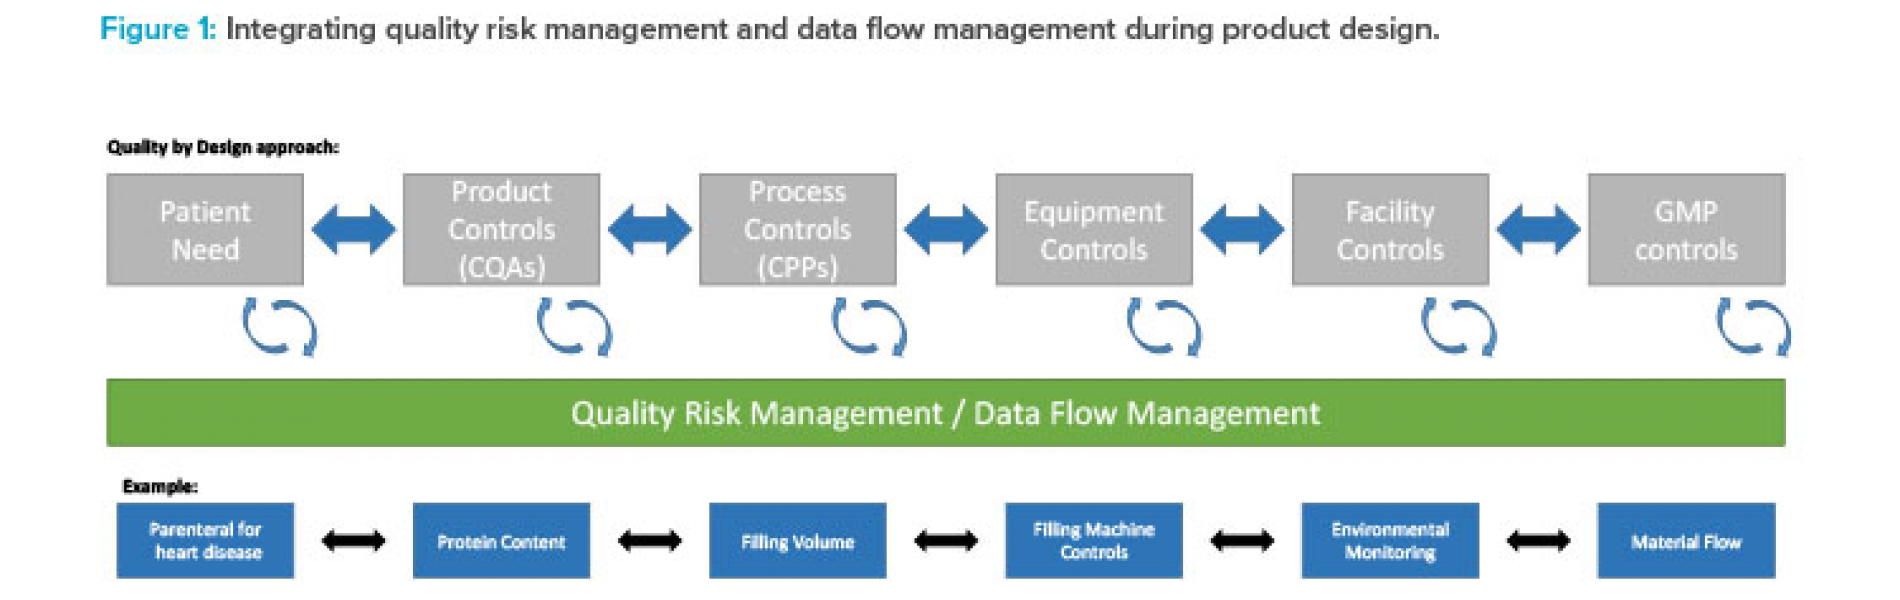 Figure 1: Integrating quality risk management and data flow management during product design.